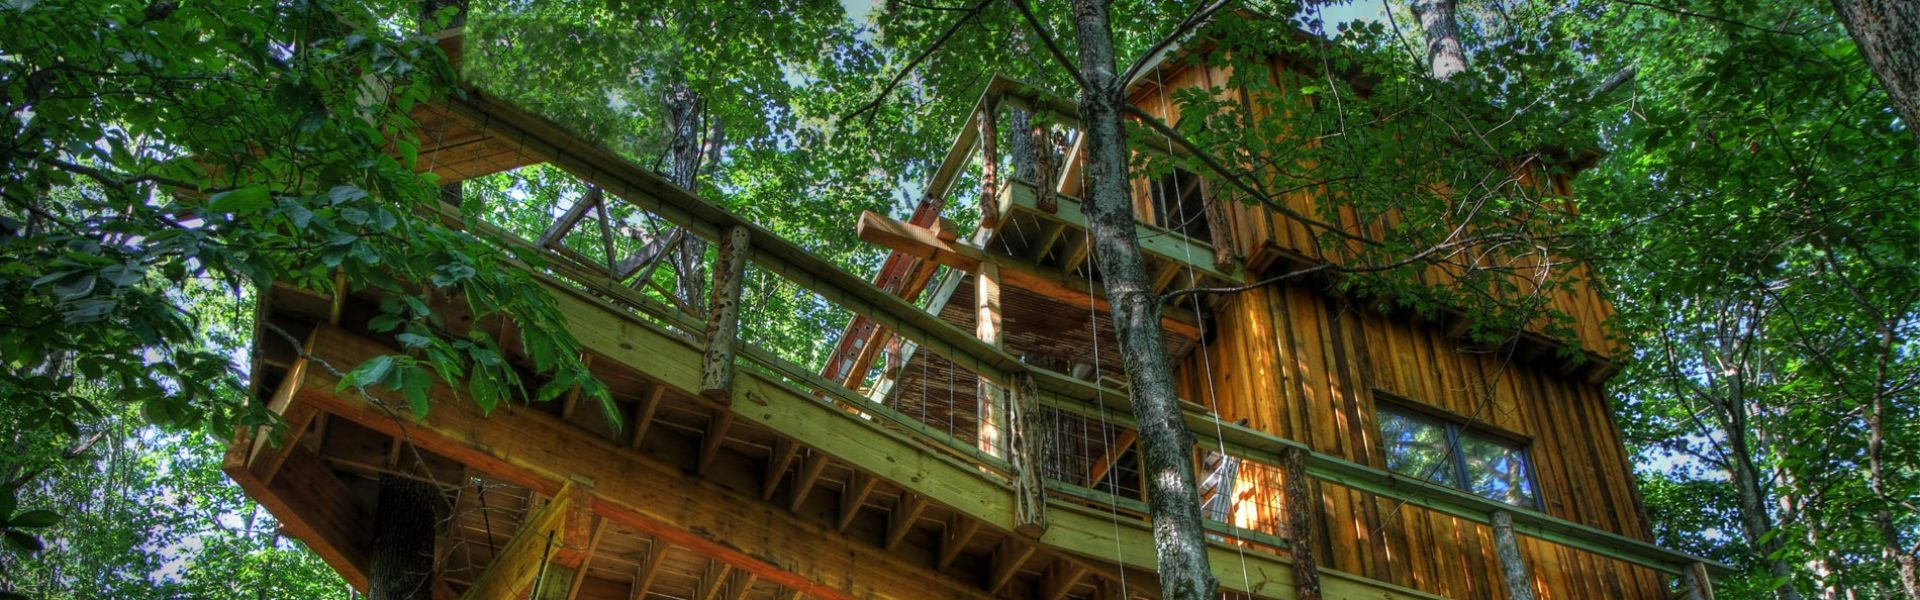 World Treehouses